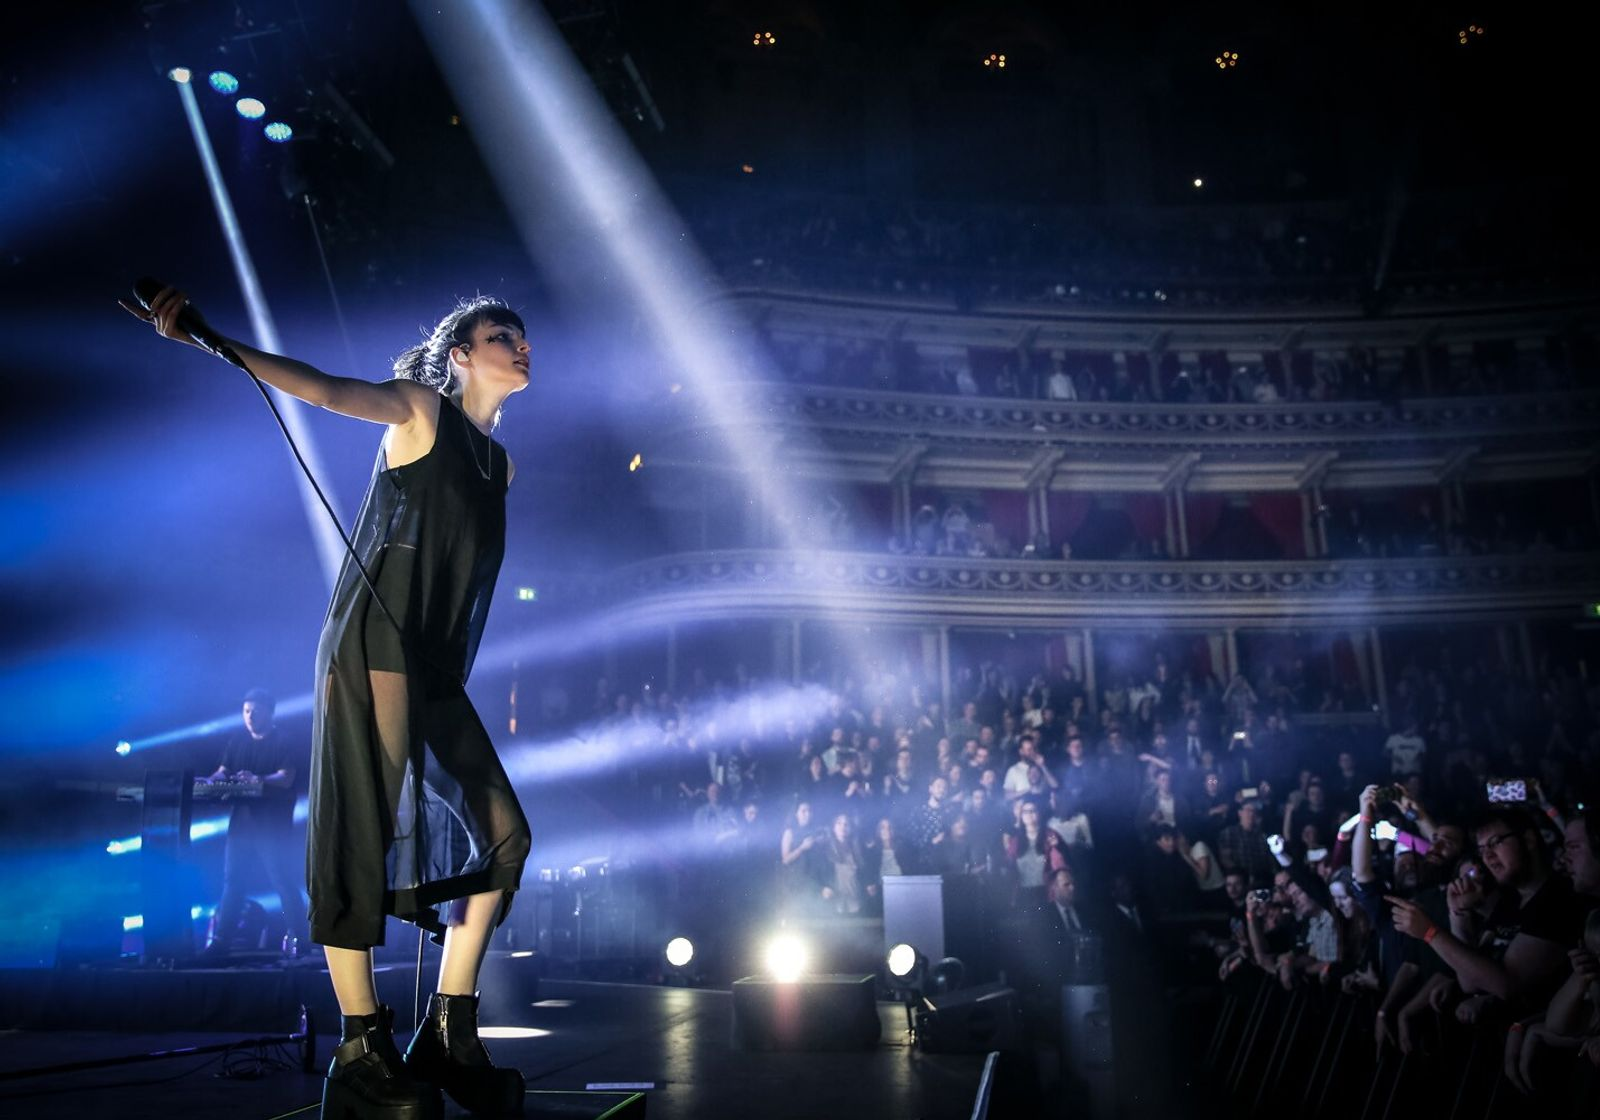 Scottish electro-pop band Chvrches made an acclaimed performance in 2016.